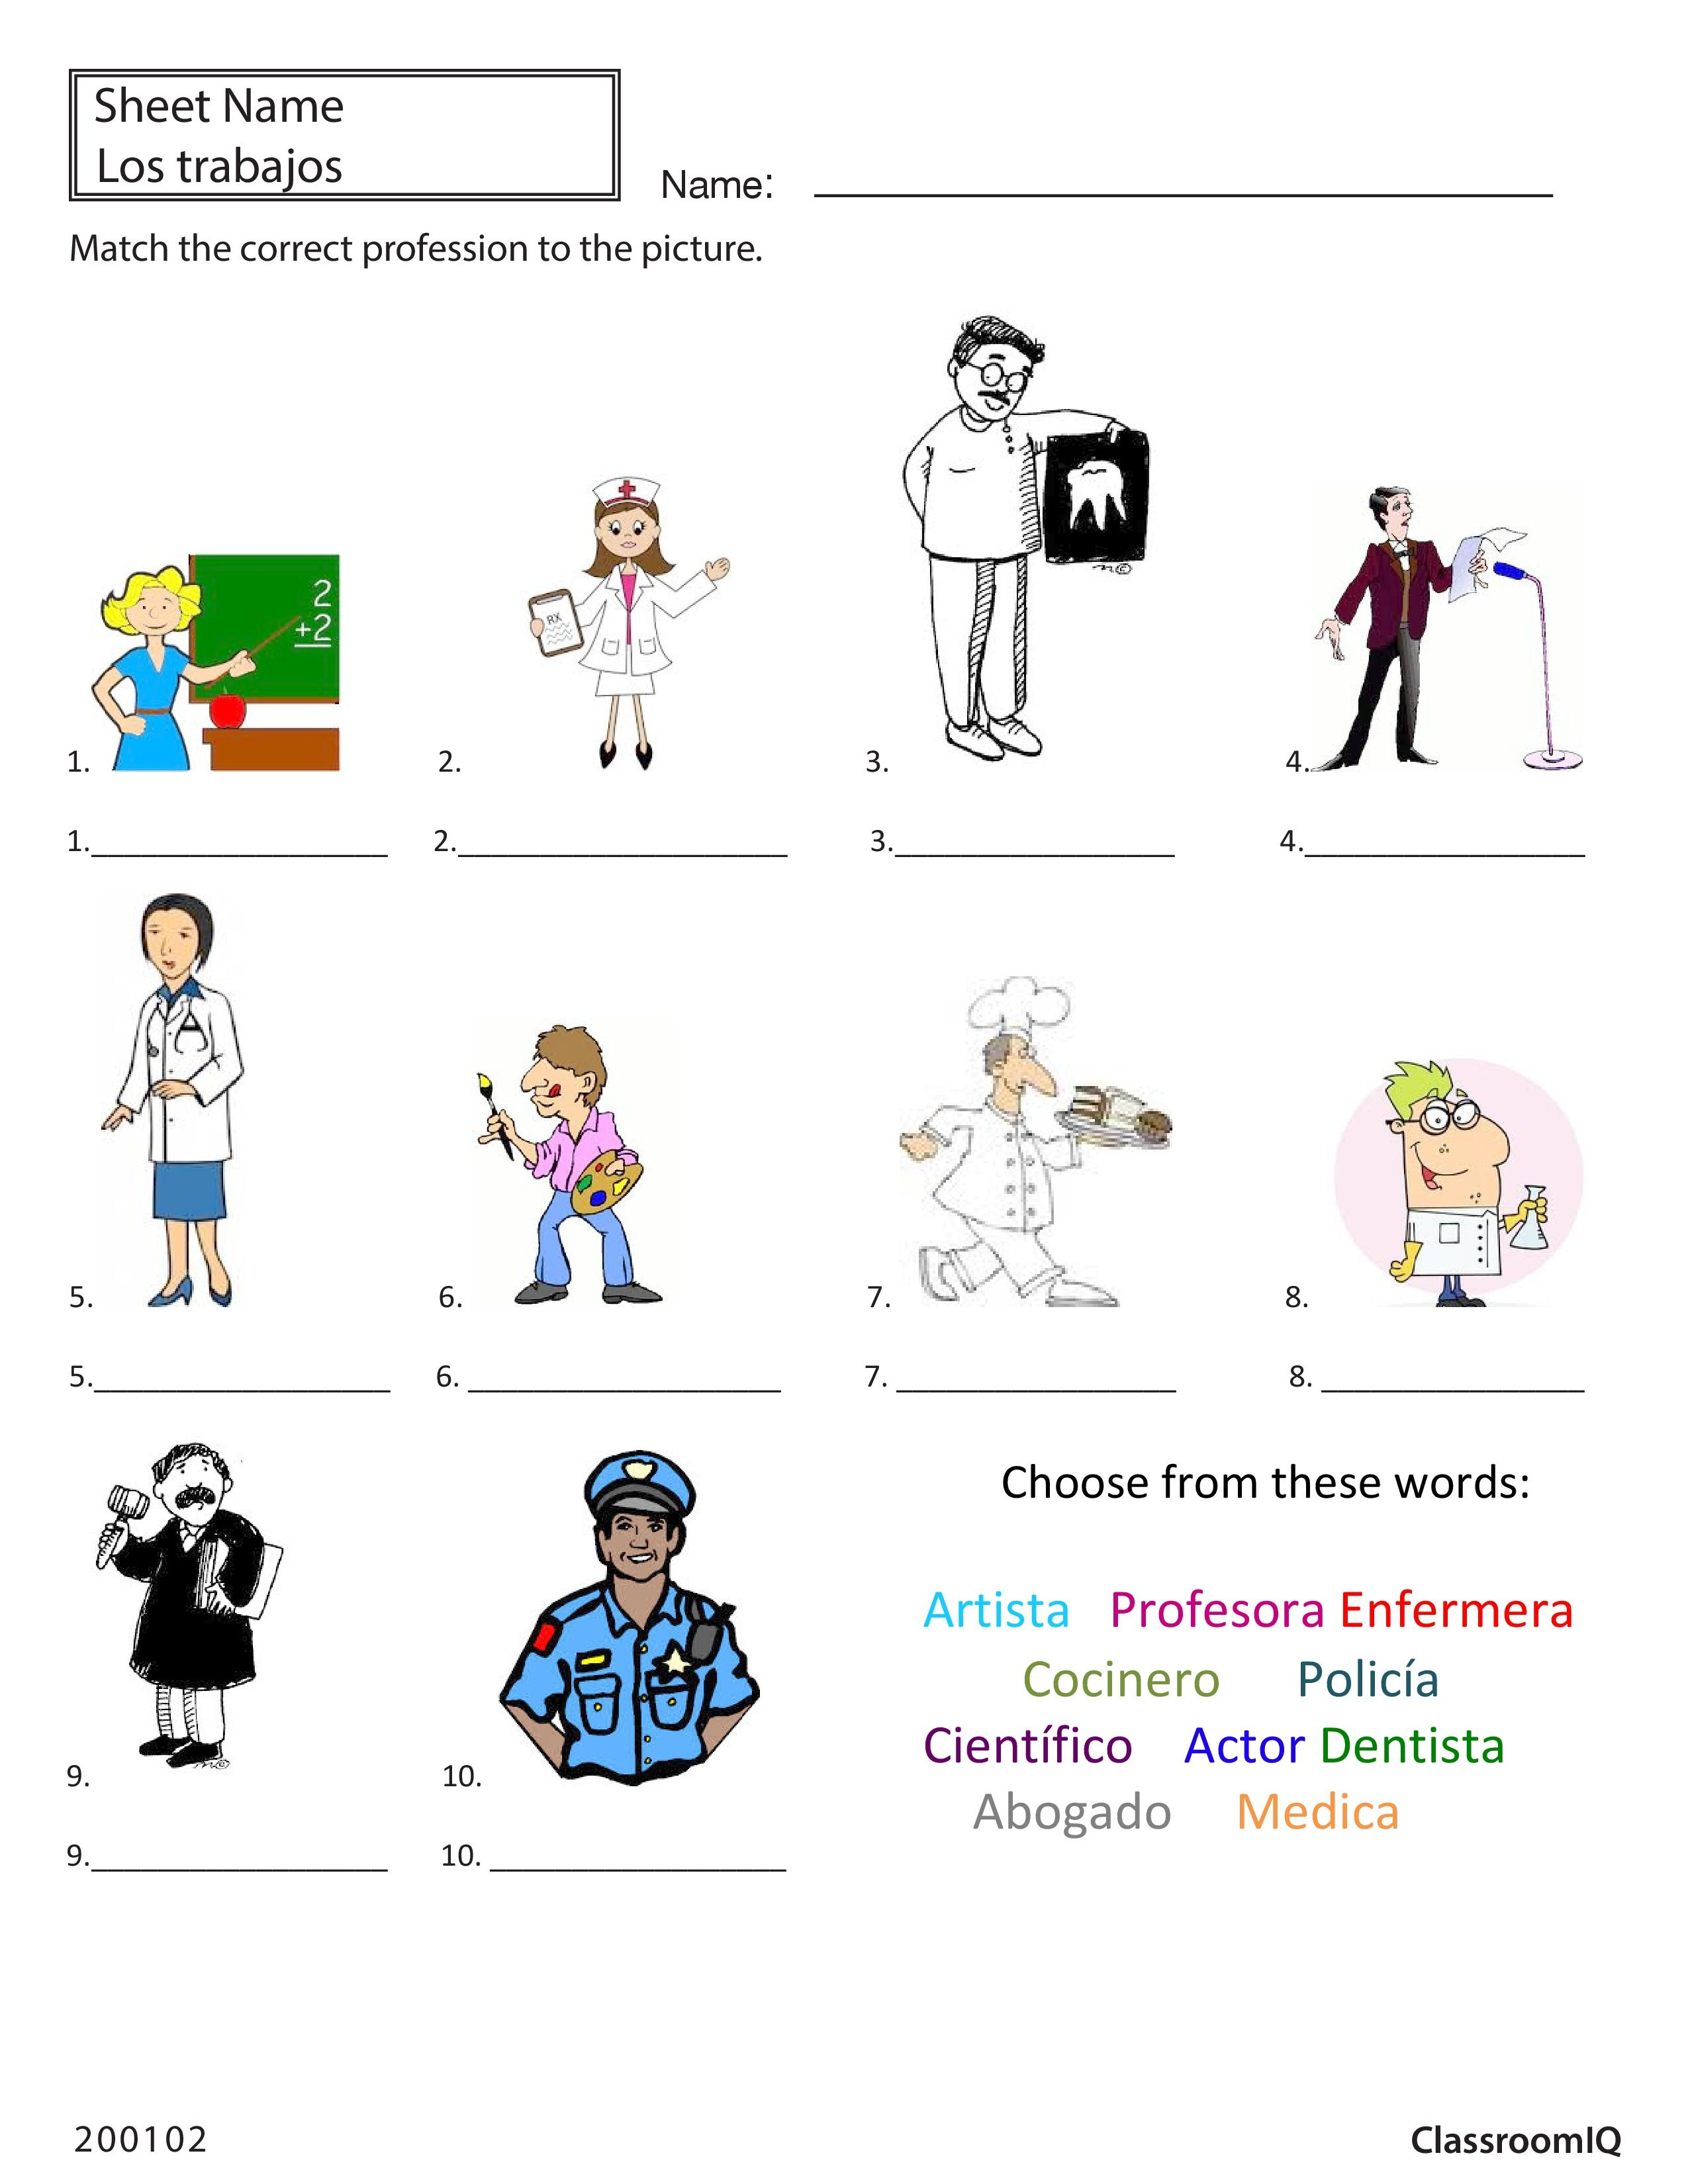 Spanish Professions Worksheet From Classroomiq